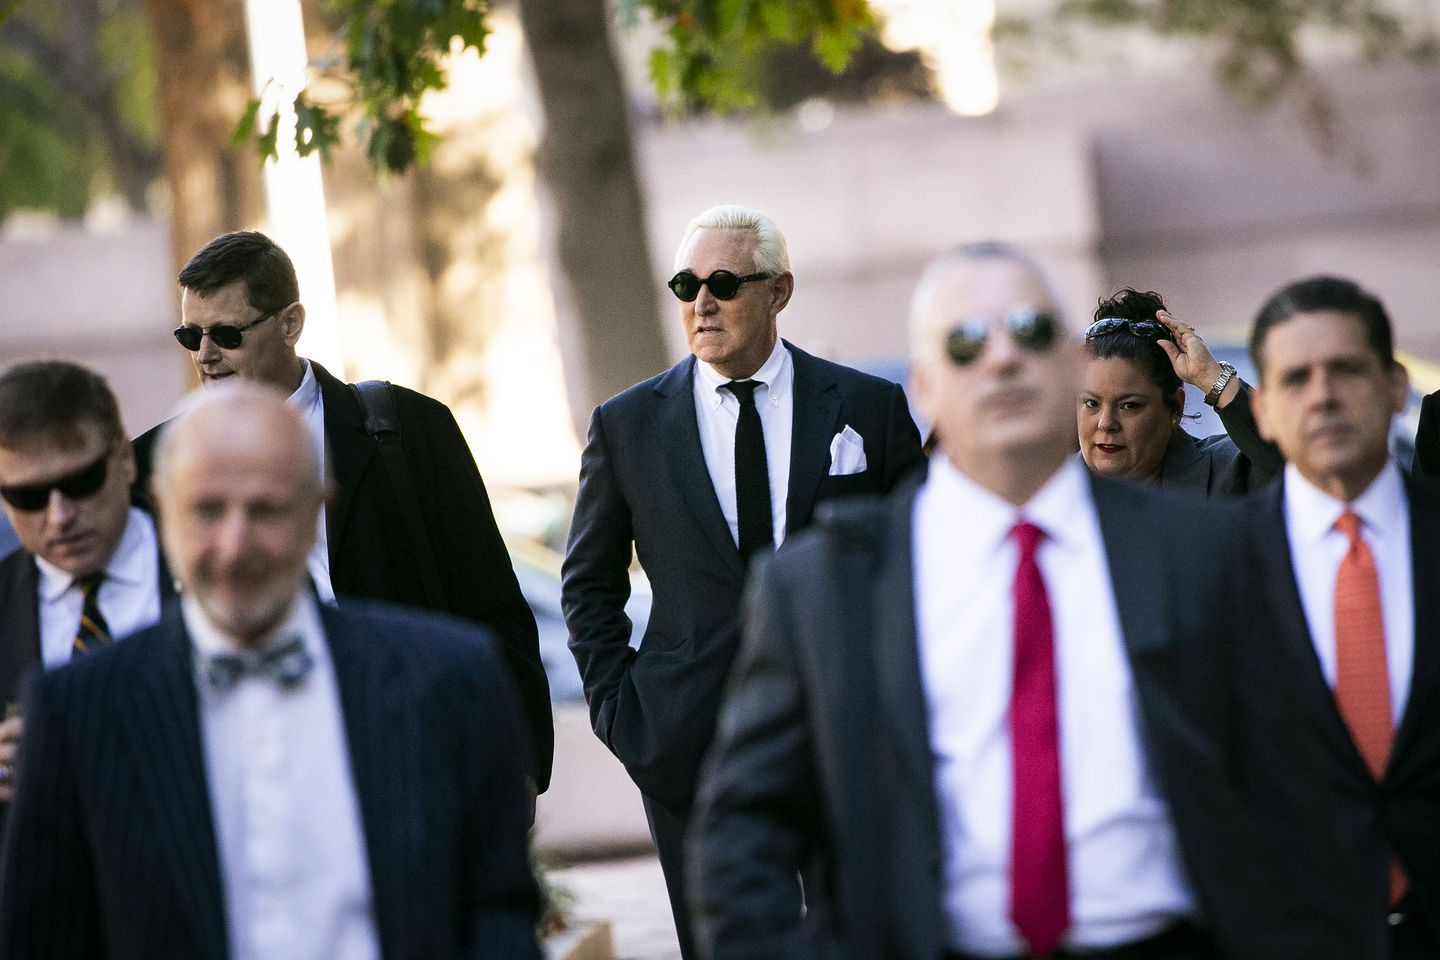 Roger Stone has turned his court appearances into a fashion show